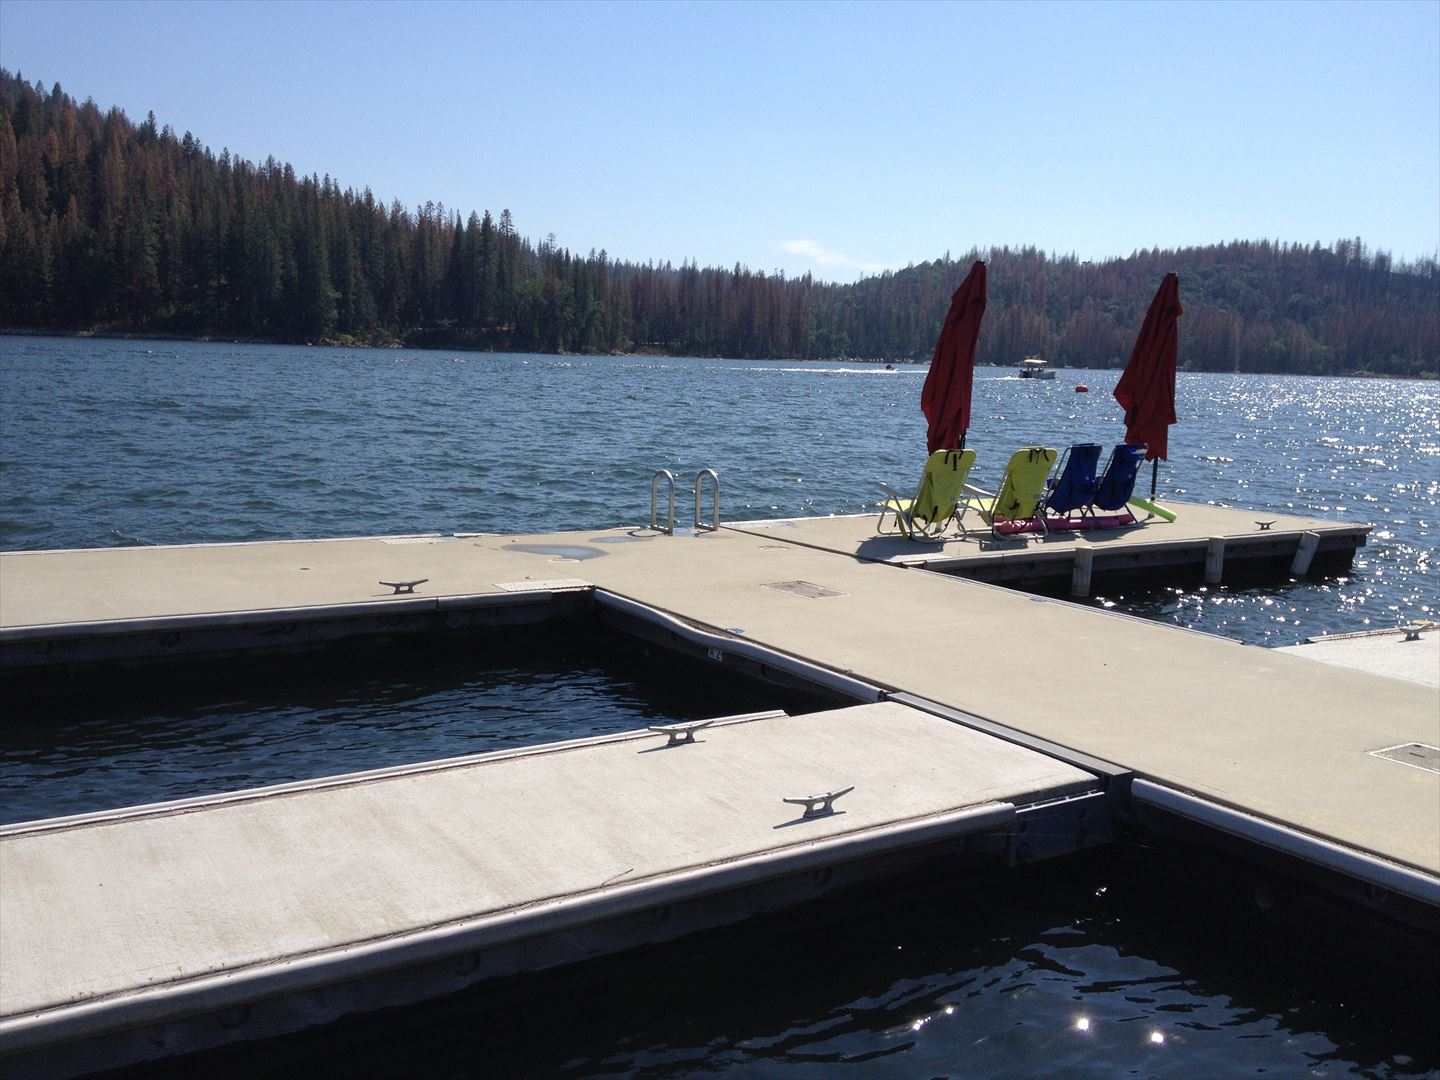 Boatslip A-2 is Extra Wide-so bring your favorite deck chairs so you can sit back, chat and enjoy the views and all the action on the lake.